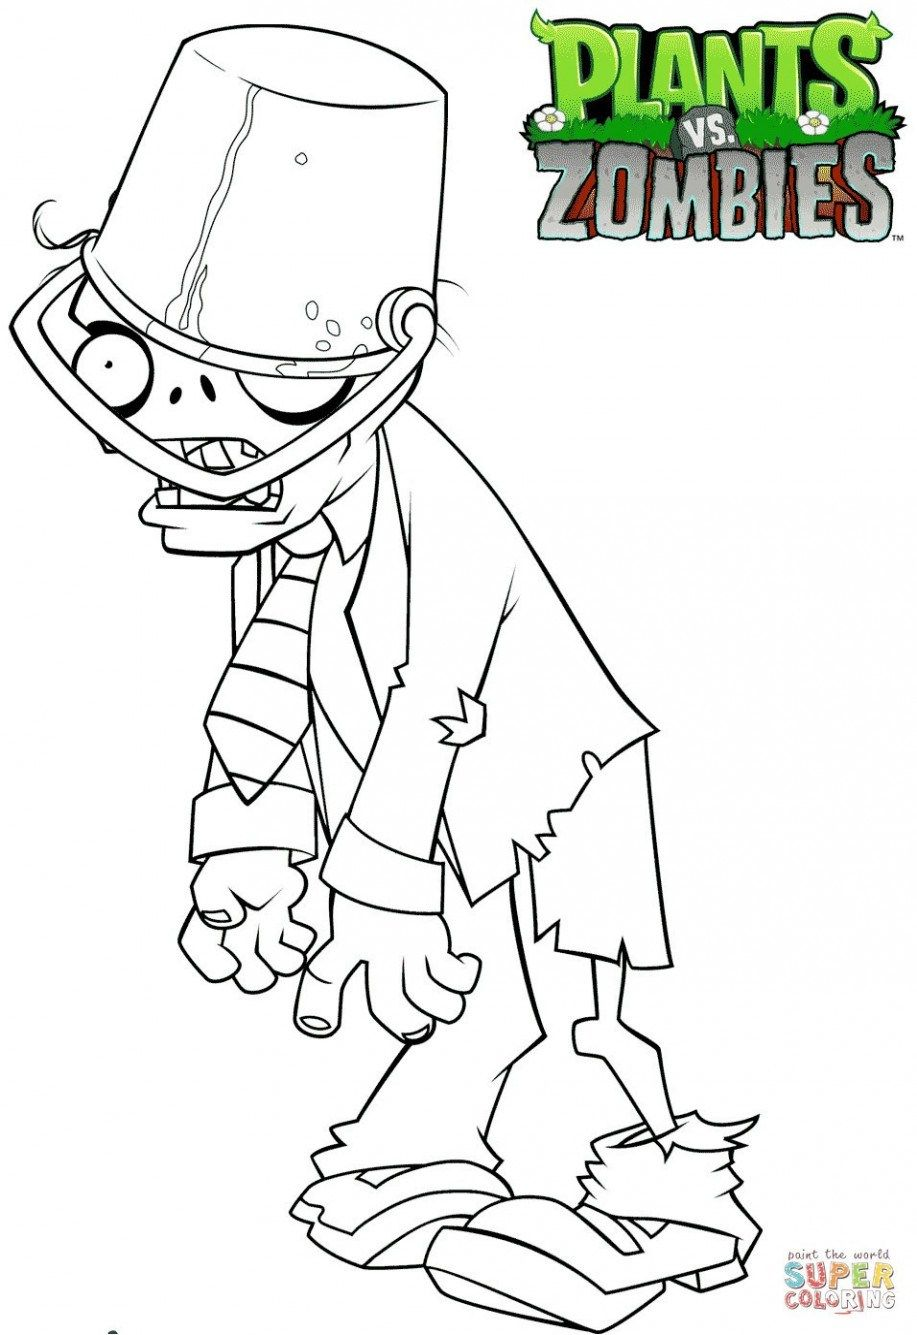 22 Best Photo Of Zombie Coloring Pages Davemelillo Com Plants Vs Zombies Birthday Party Plant Zombie Zombie Birthday Parties